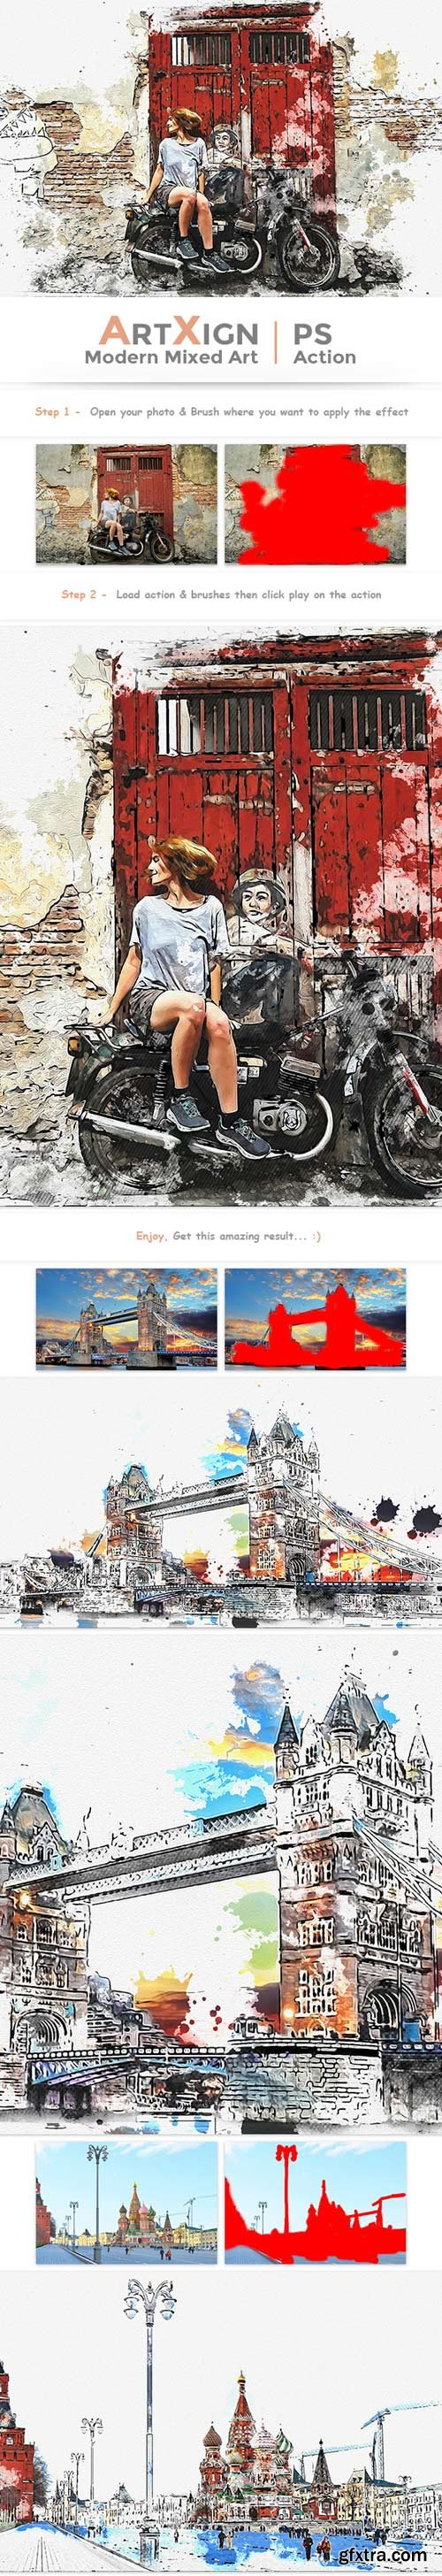 GraphicRiver - Artxign - Modern Mixed Art | PS Action - 22727240